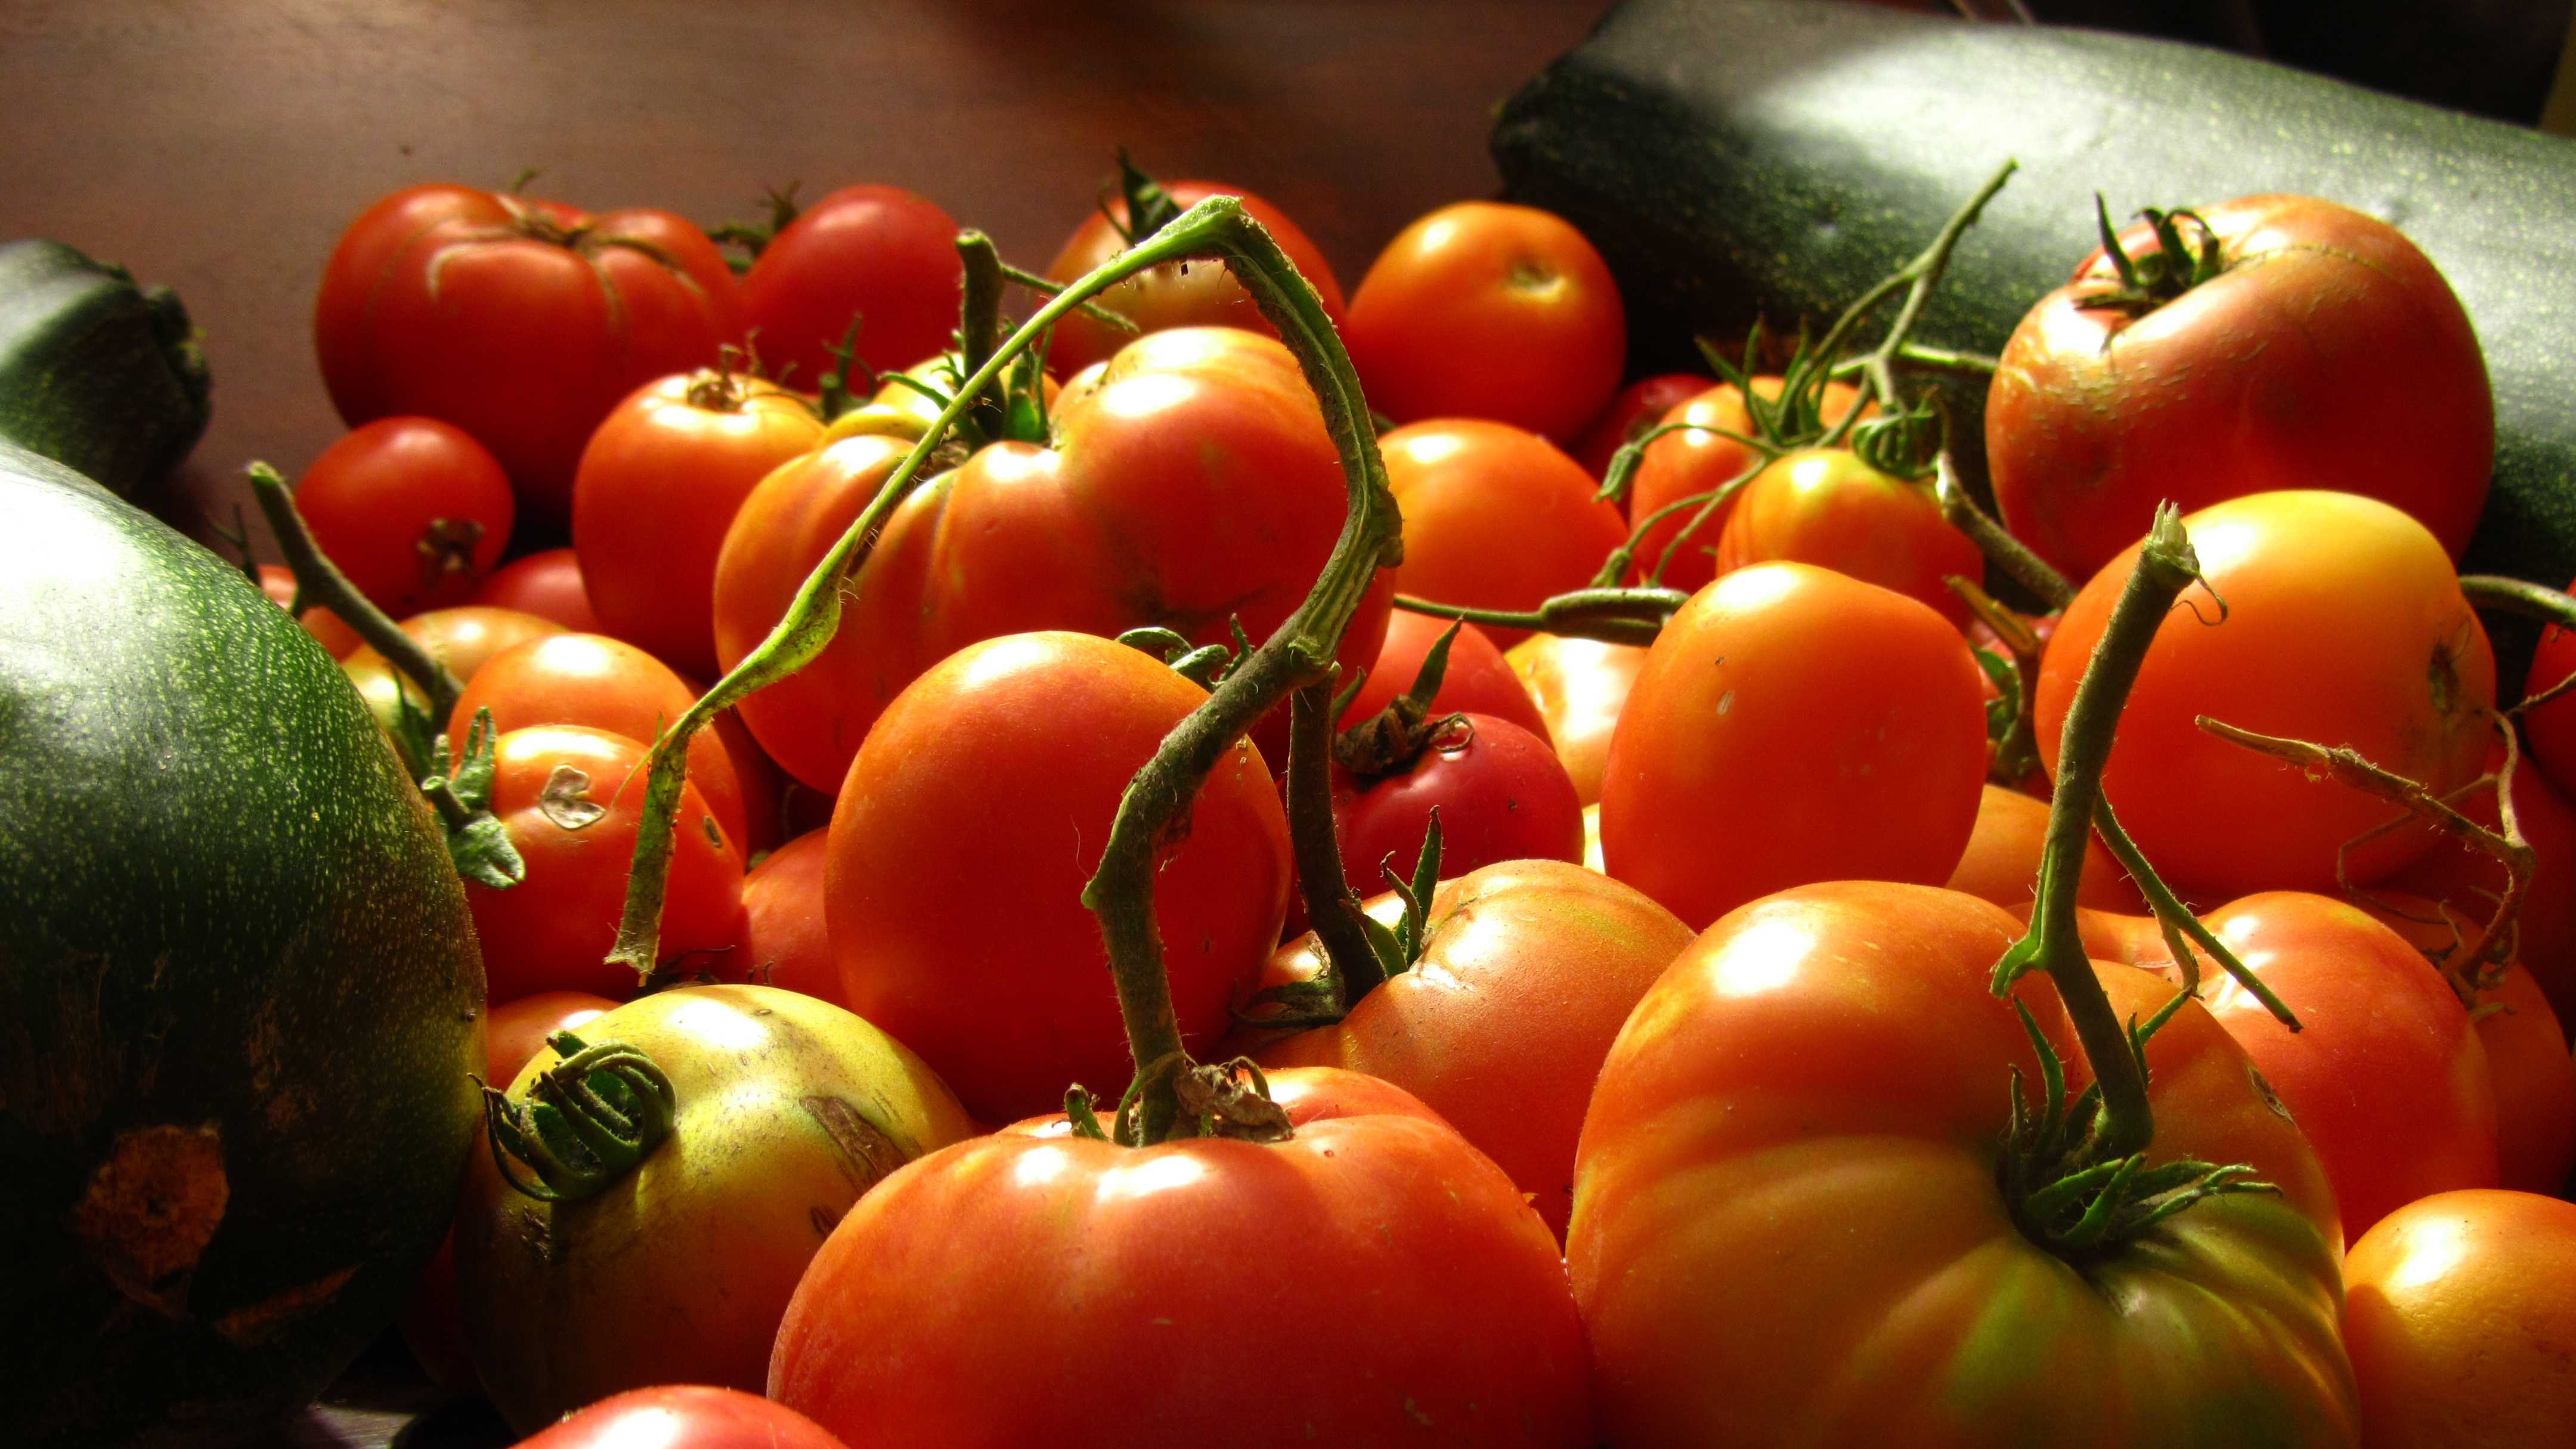 Tomatoes are part of the Mediterranean Diet.